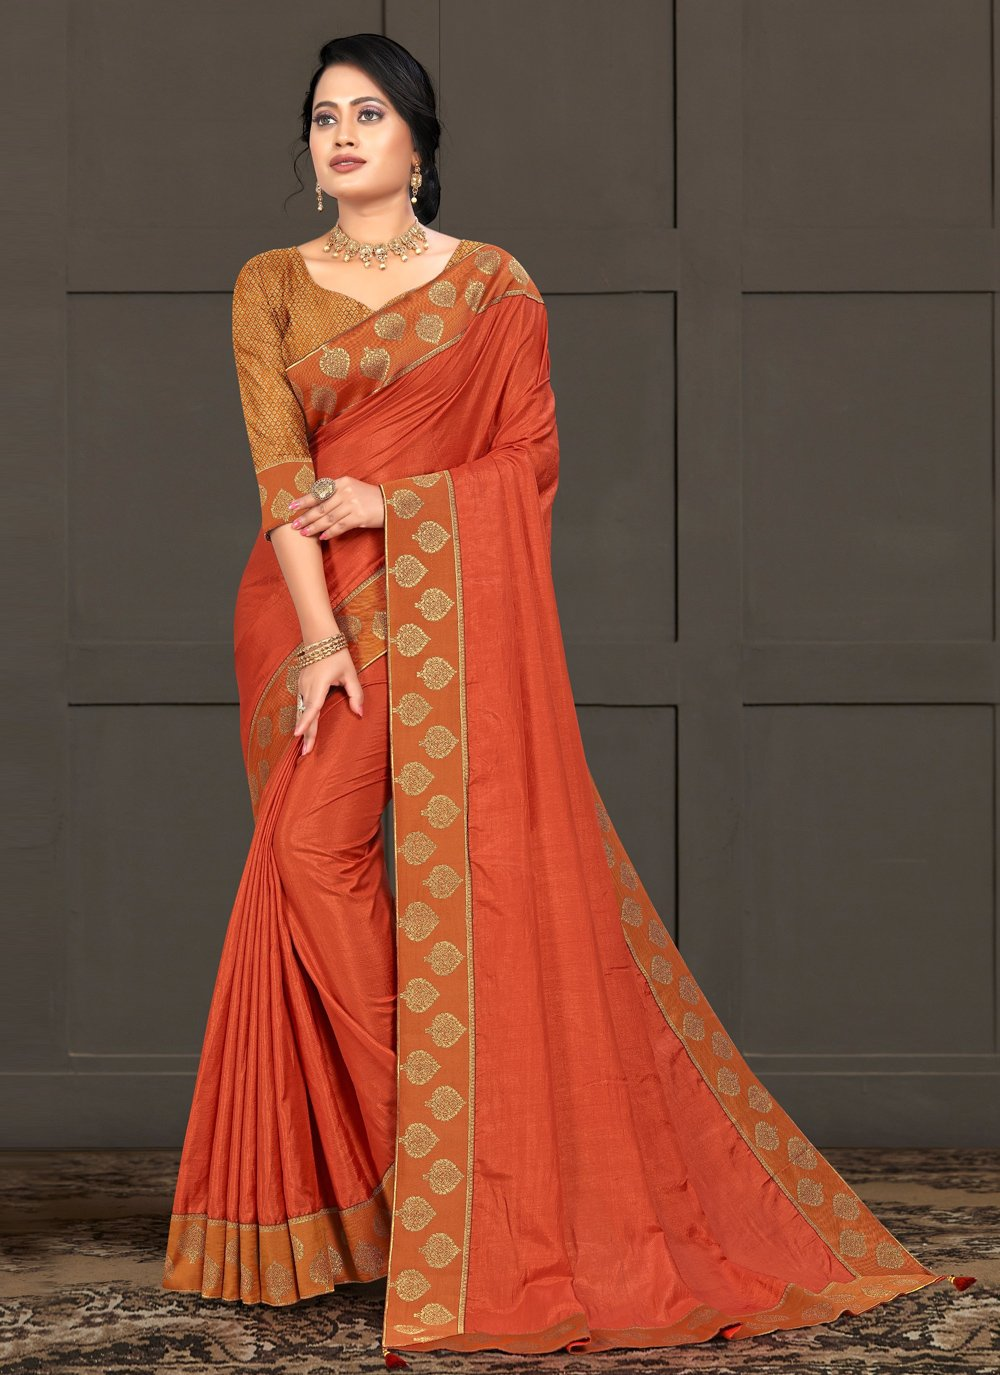 Silk Lace Bollywood Saree